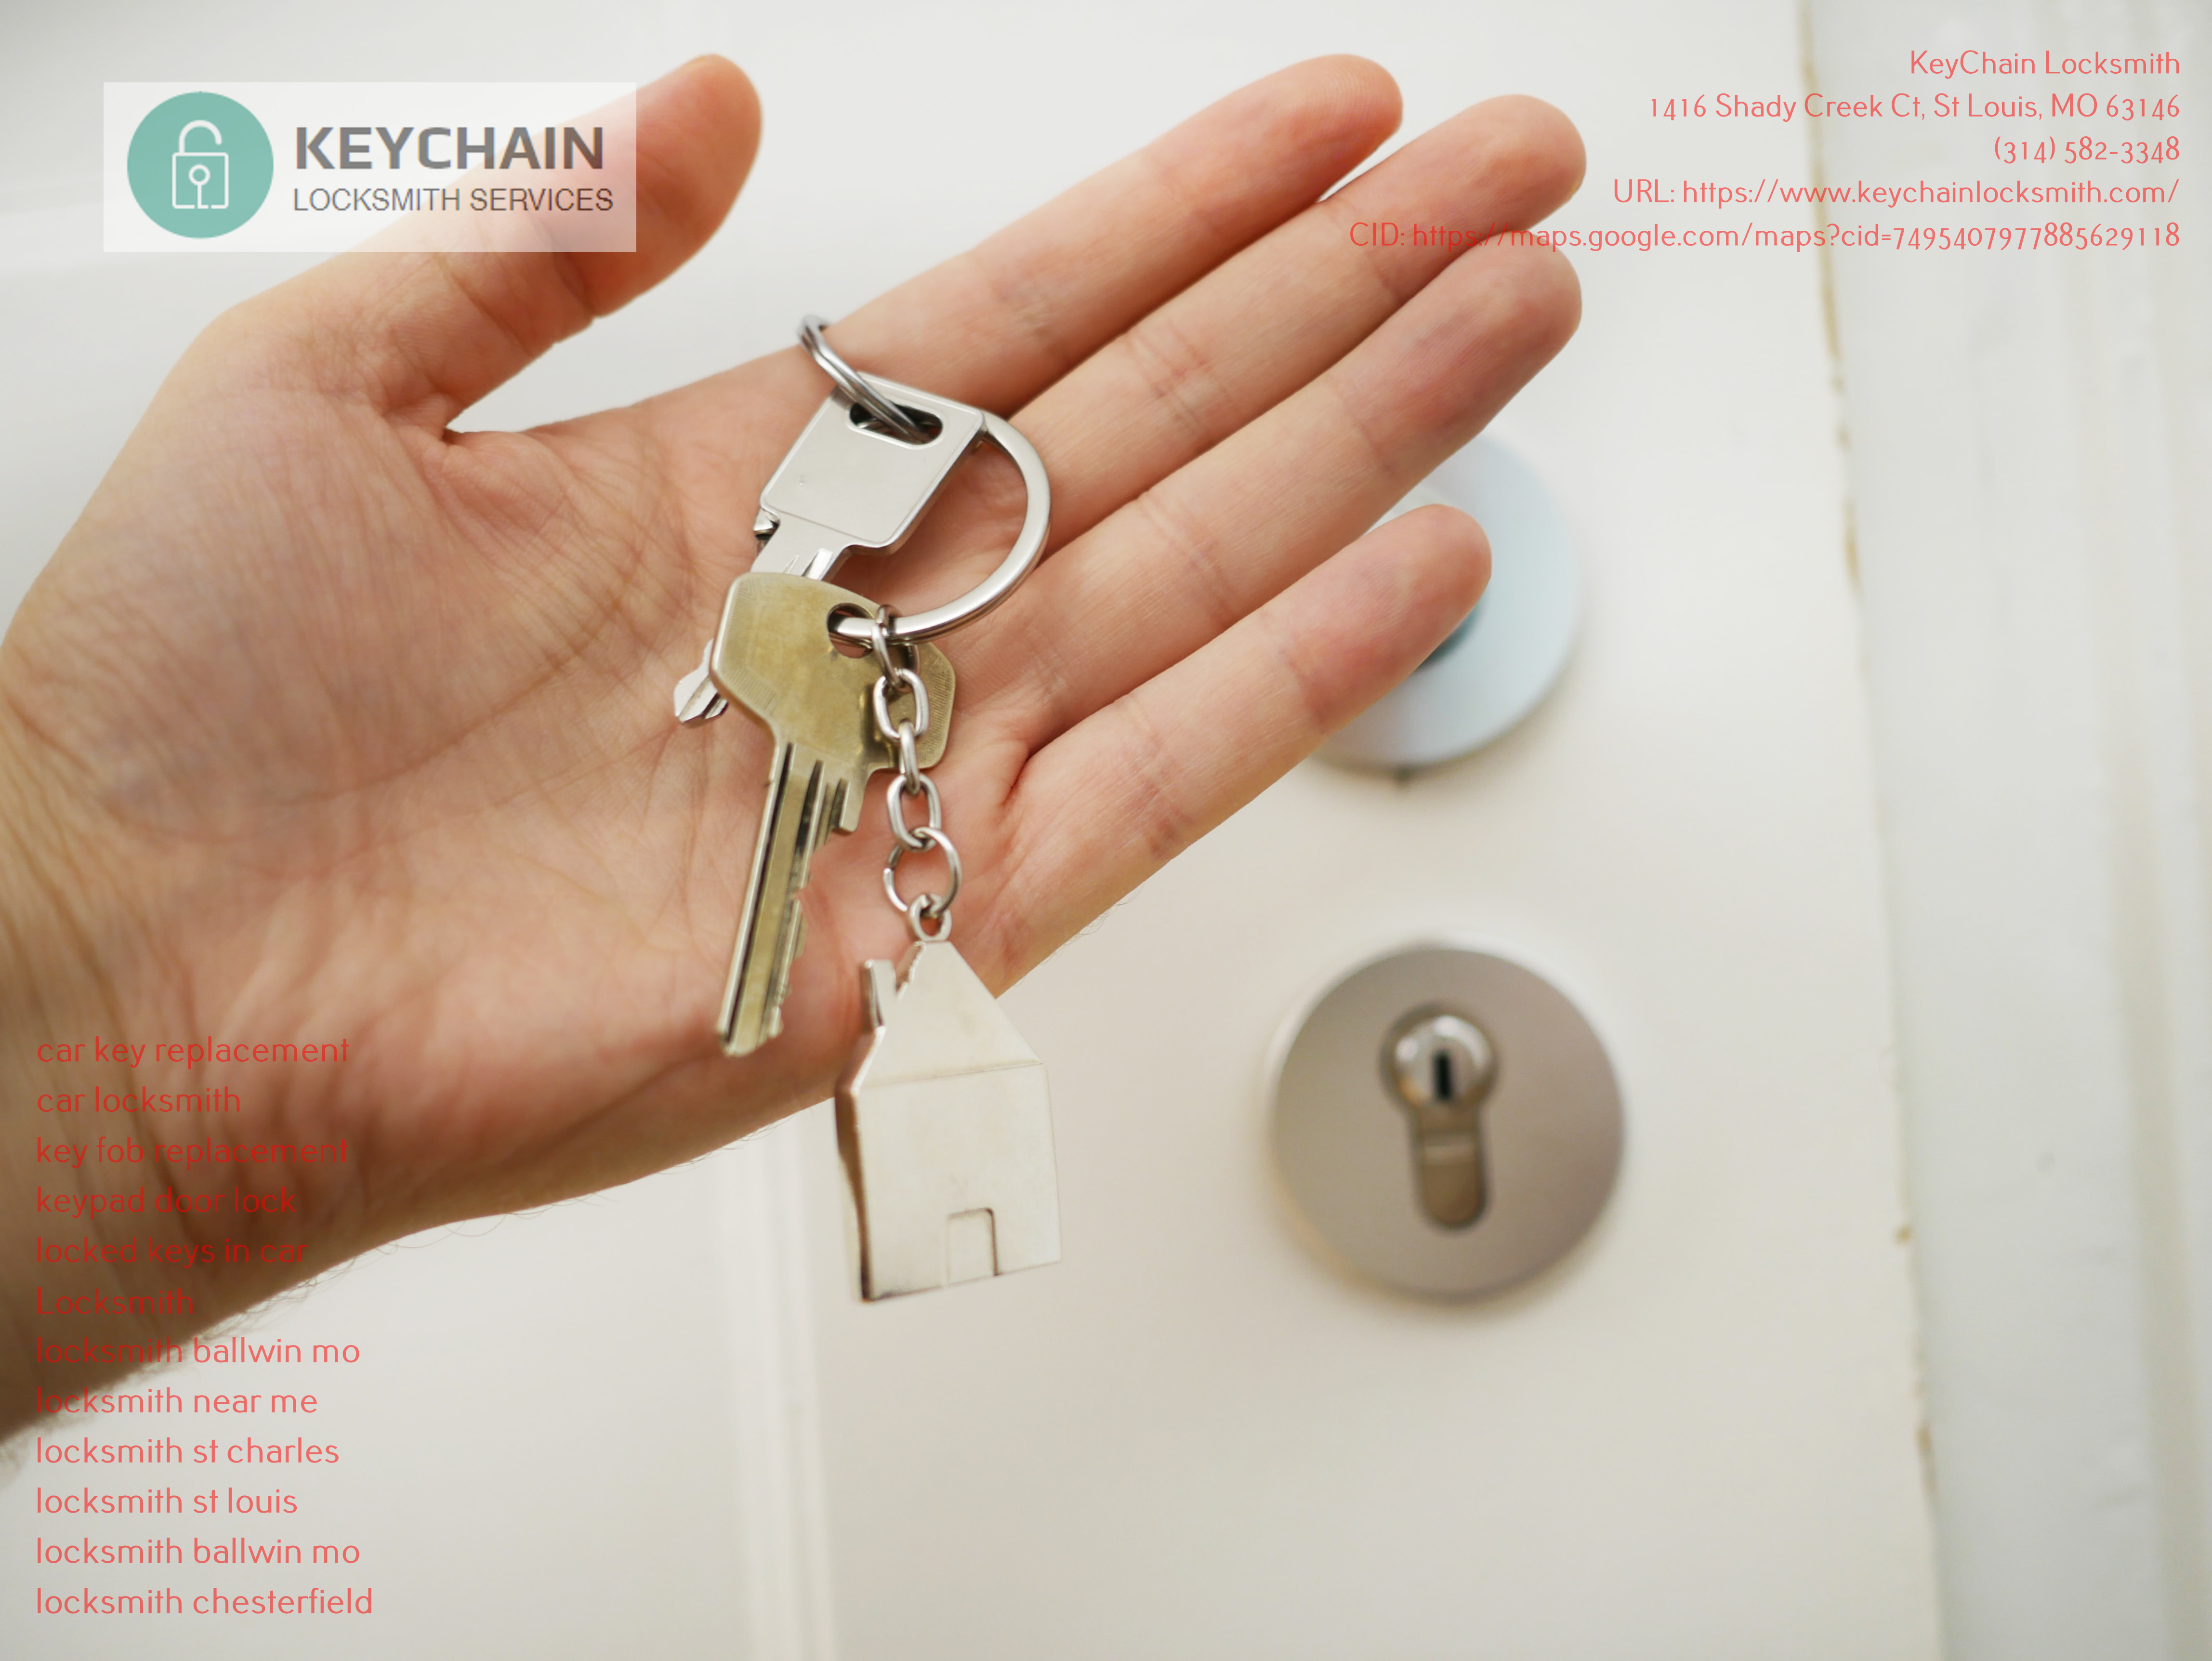 Keychain Locksmith Highlights Why They are The Highly Recommended Emergency Locksmith Service Company